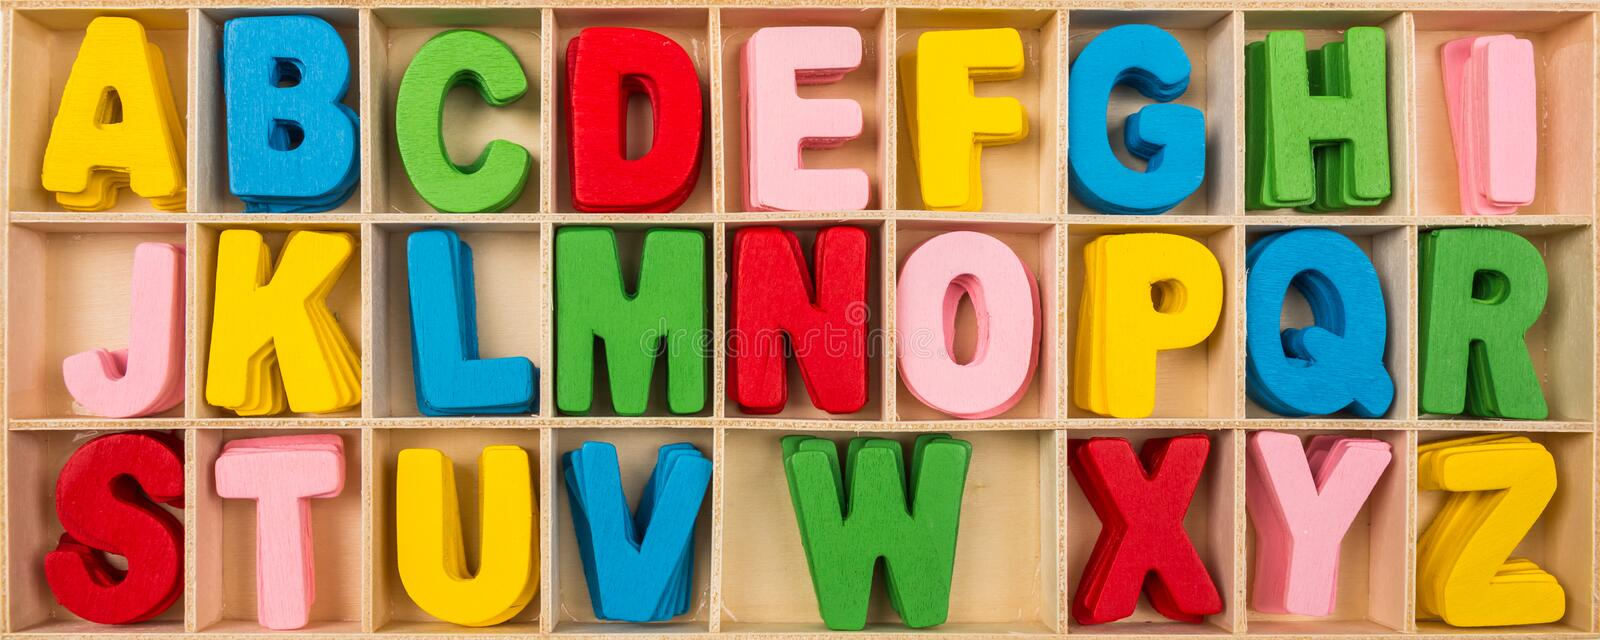 Colorful wooden alphabet letters stock photo